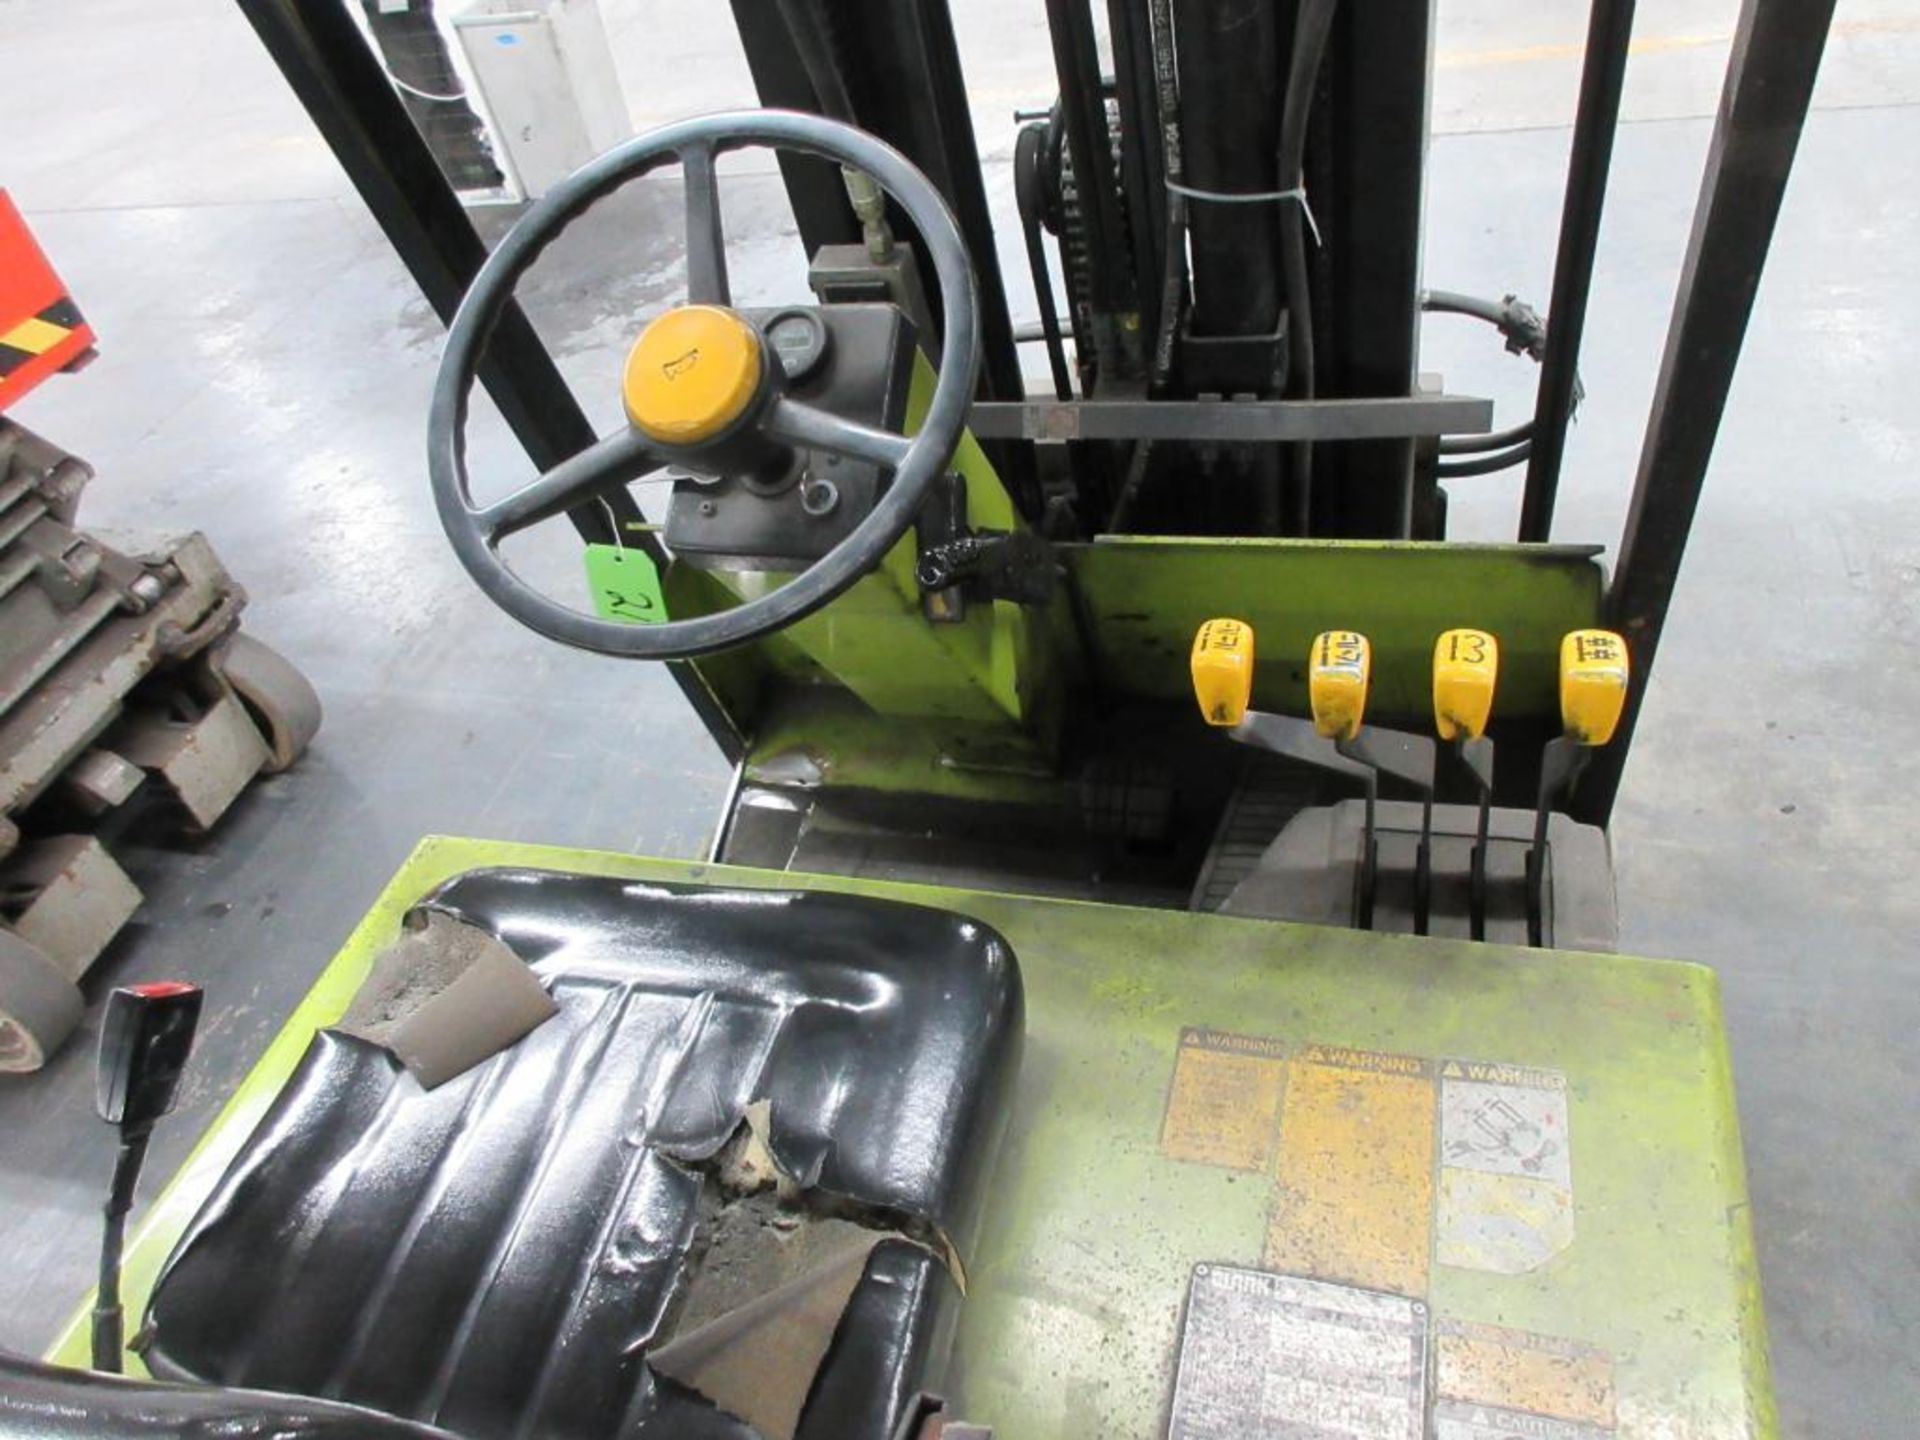 """Clark 4,500 lb capacity, 3 wheel electric clamp forklift, model TM25, 3 stage mast, 186"""" lift height - Image 3 of 10"""